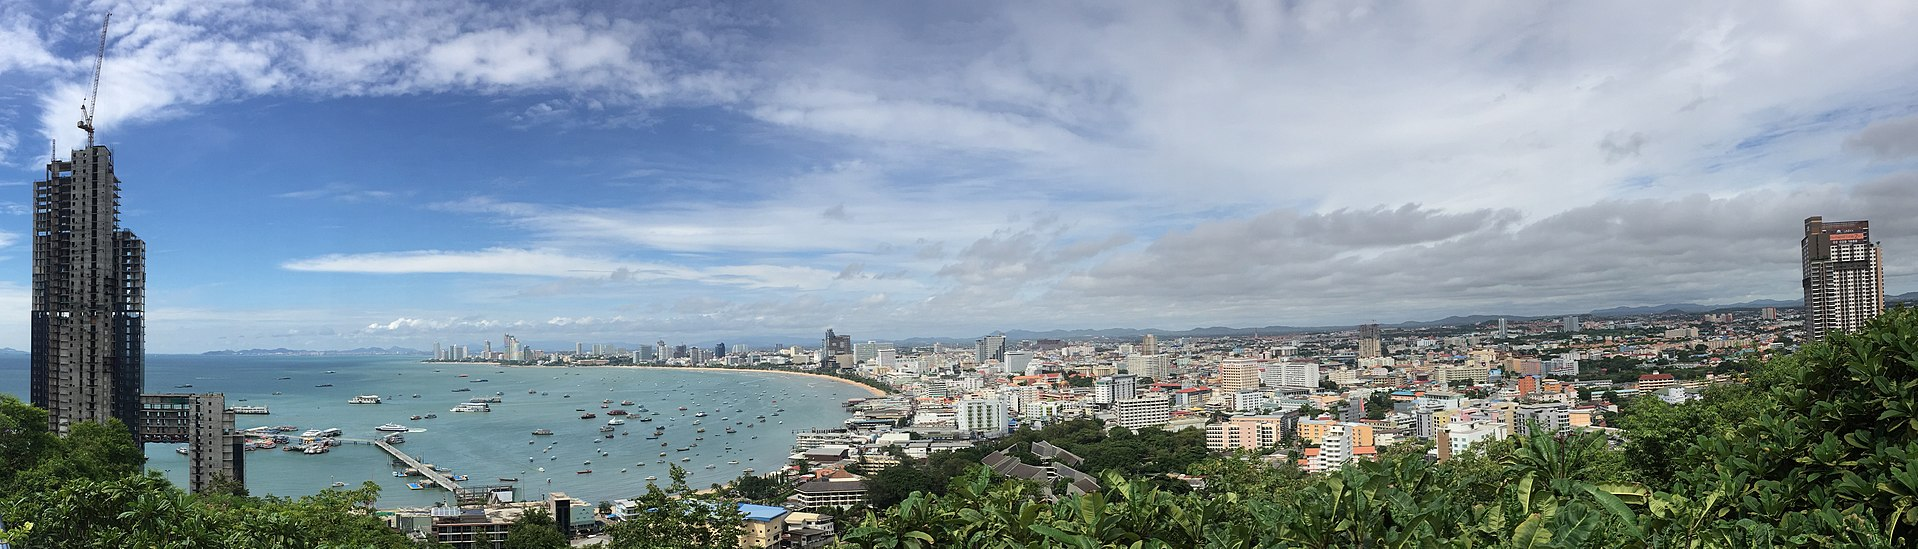 (ref:https://en.wikipedia.org/wiki/Pattaya#/media/File:Pattaya_panorama_view2.jpg)